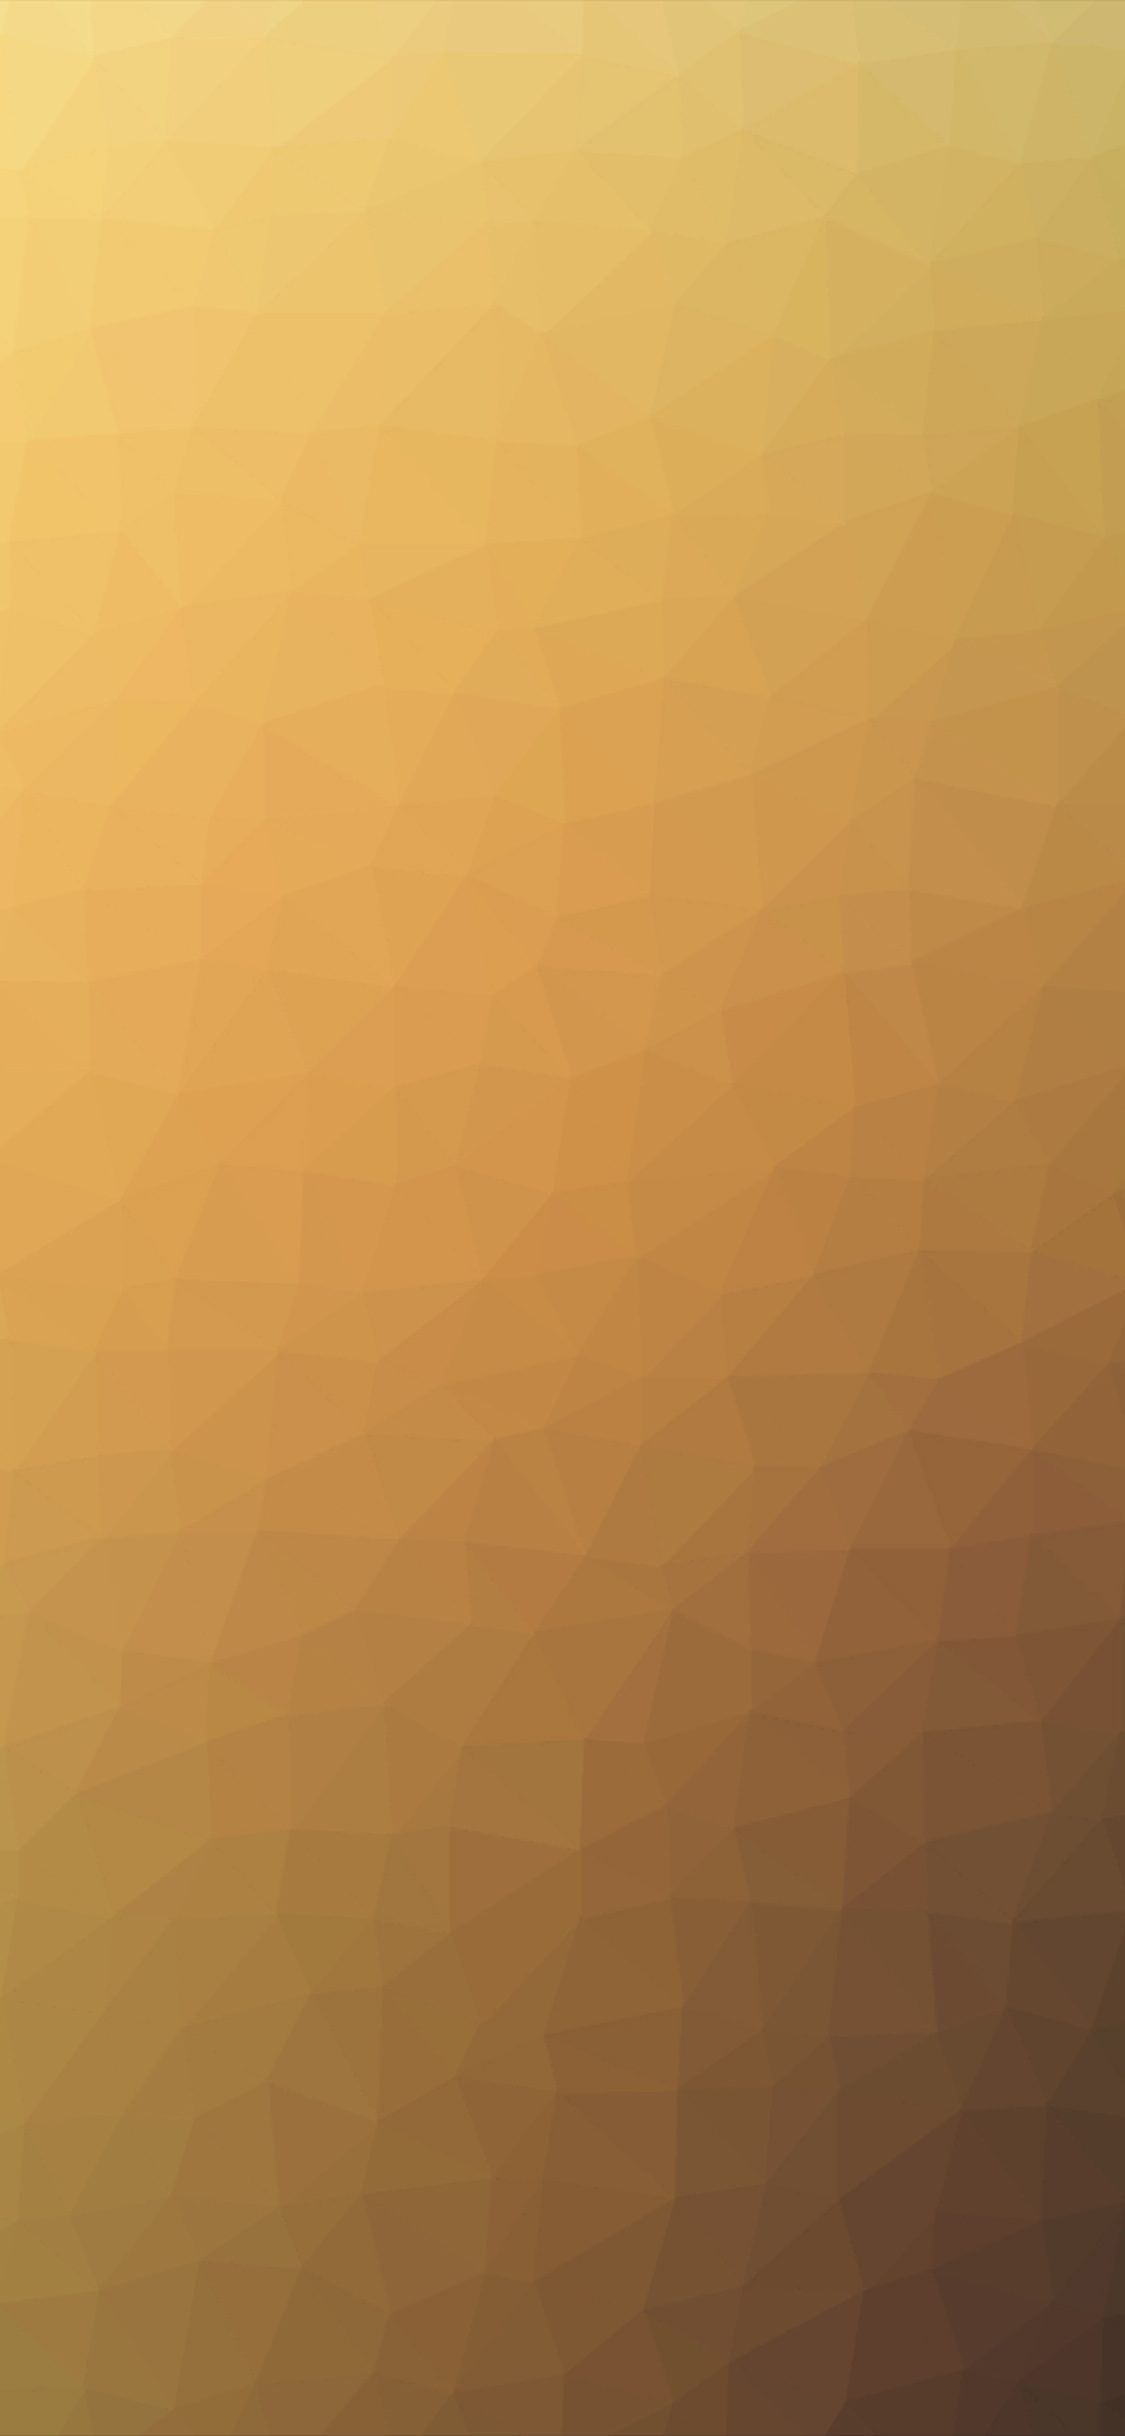 iPhoneXpapers.com-Apple-iPhone-wallpaper-vl79-polygon-art-yellow-abstract-pattern